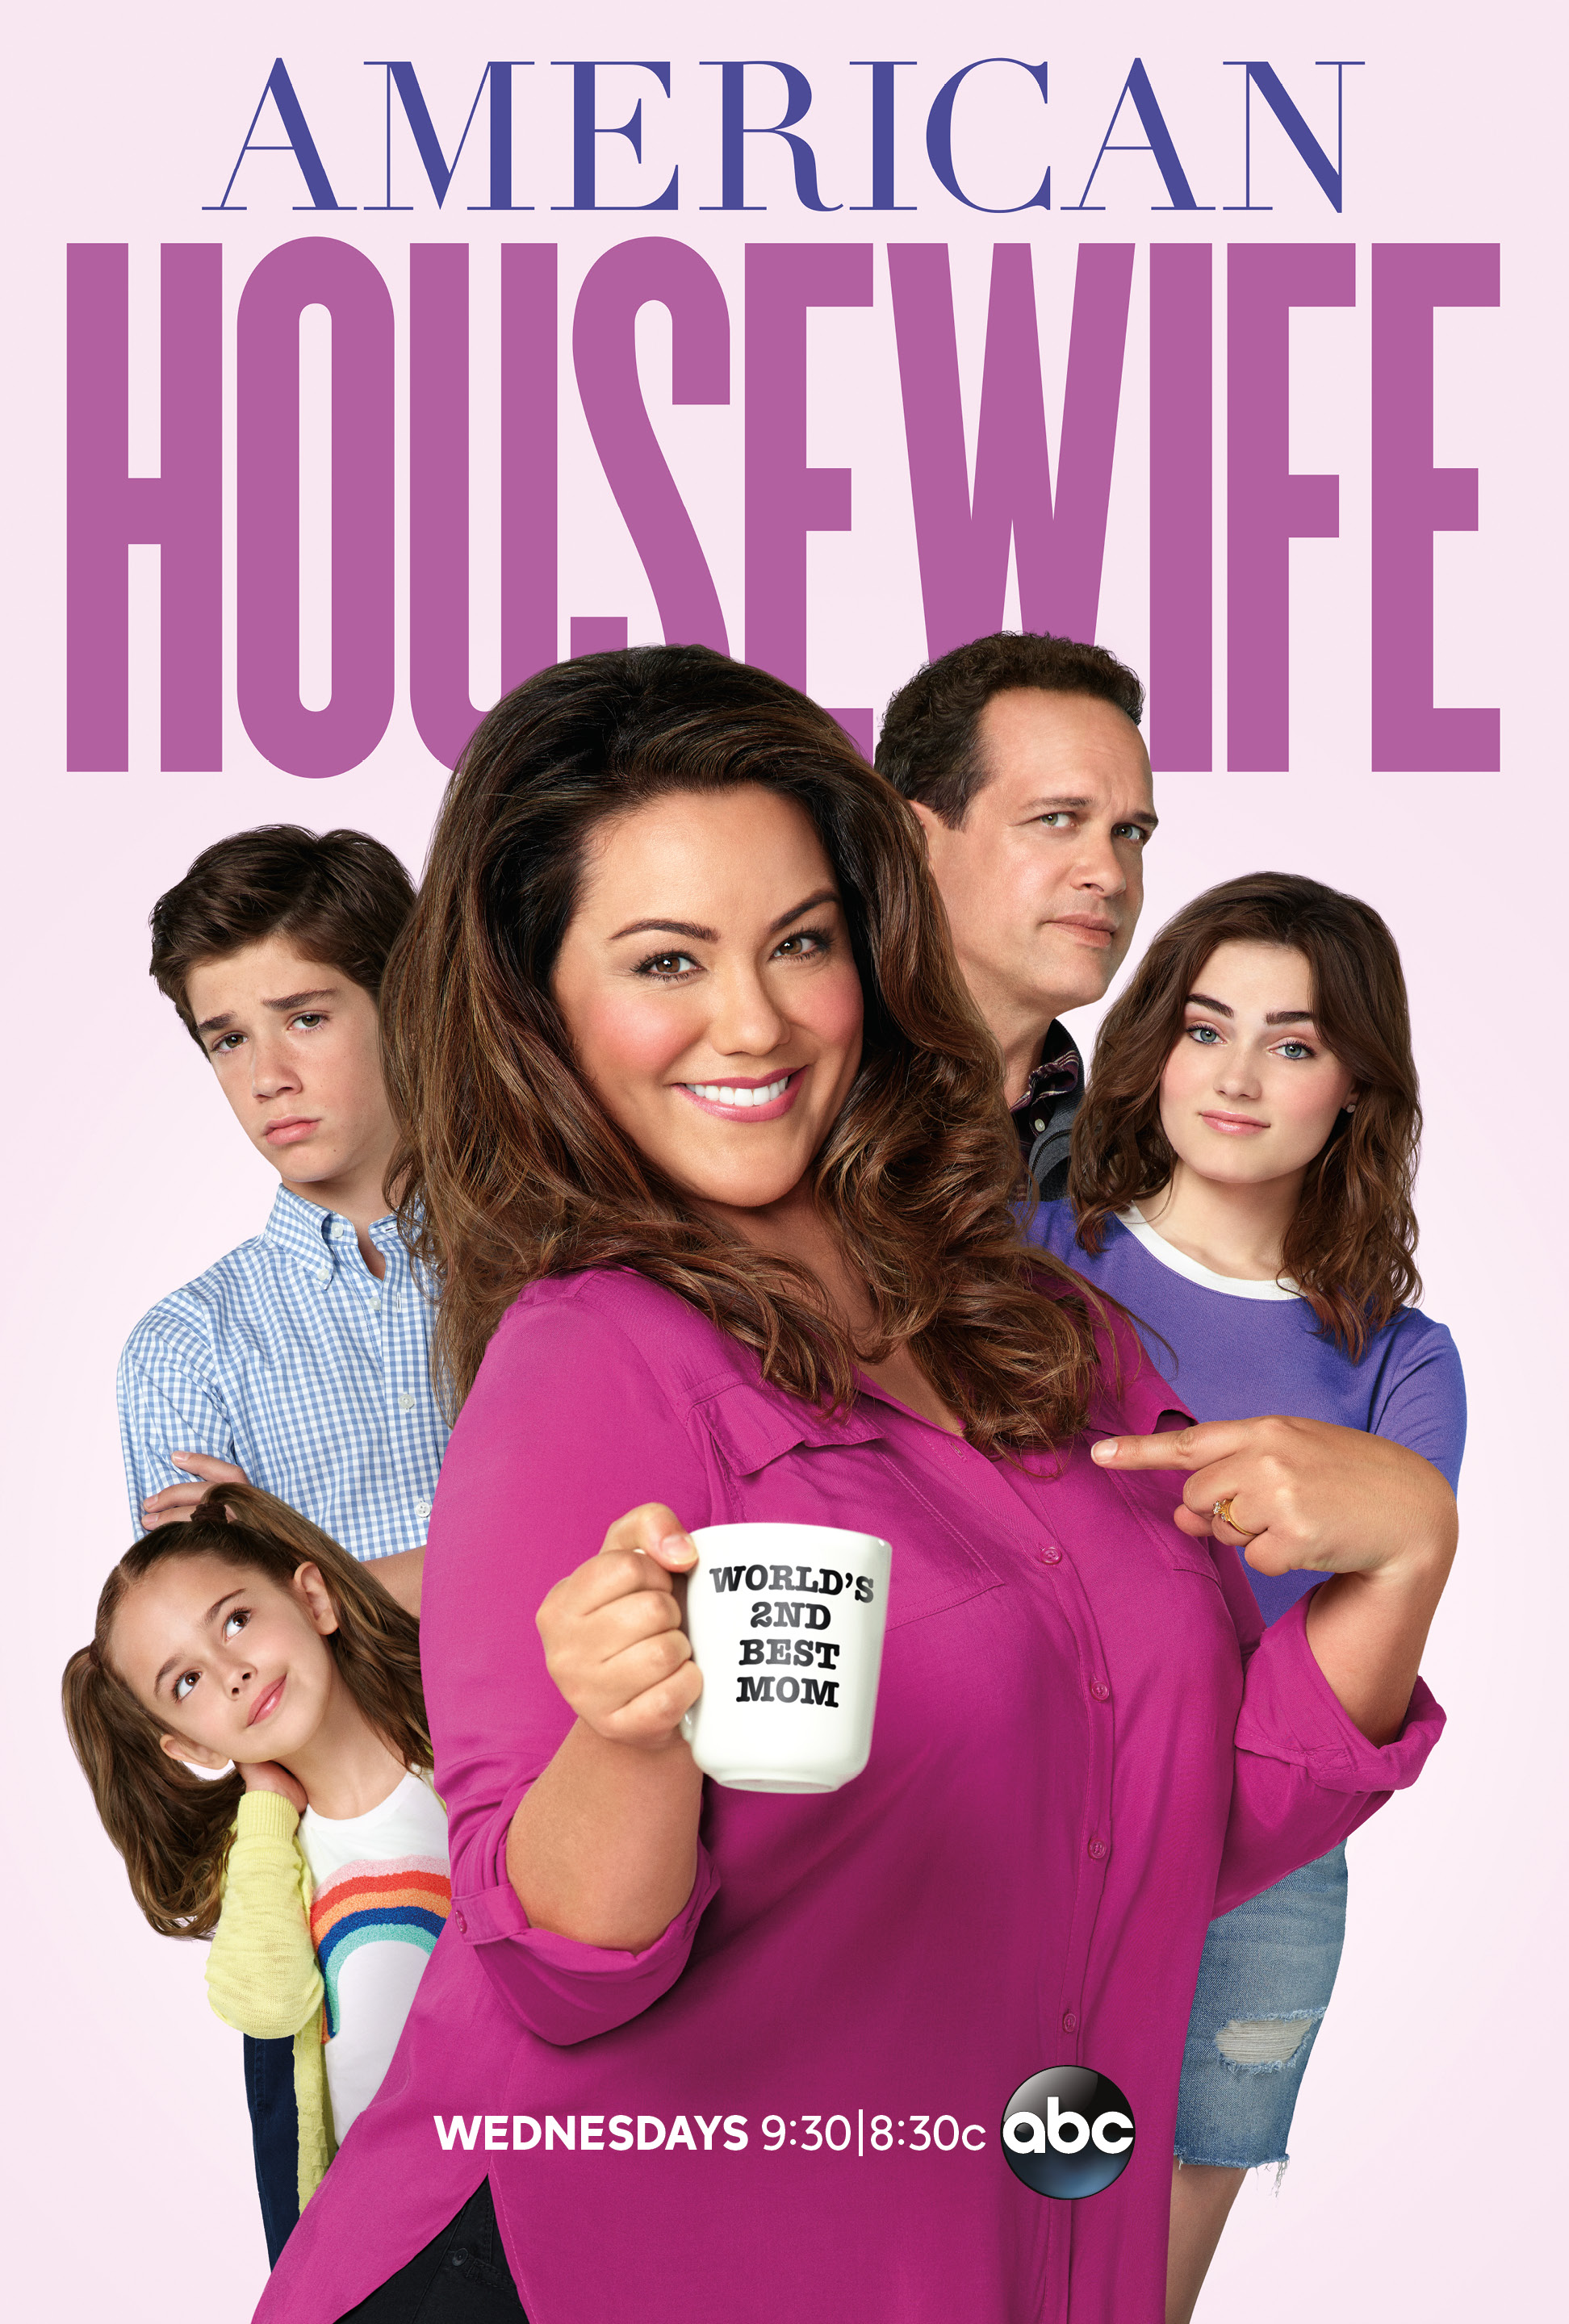 American Housewife - Season 4 Episode 1 - The Minivan